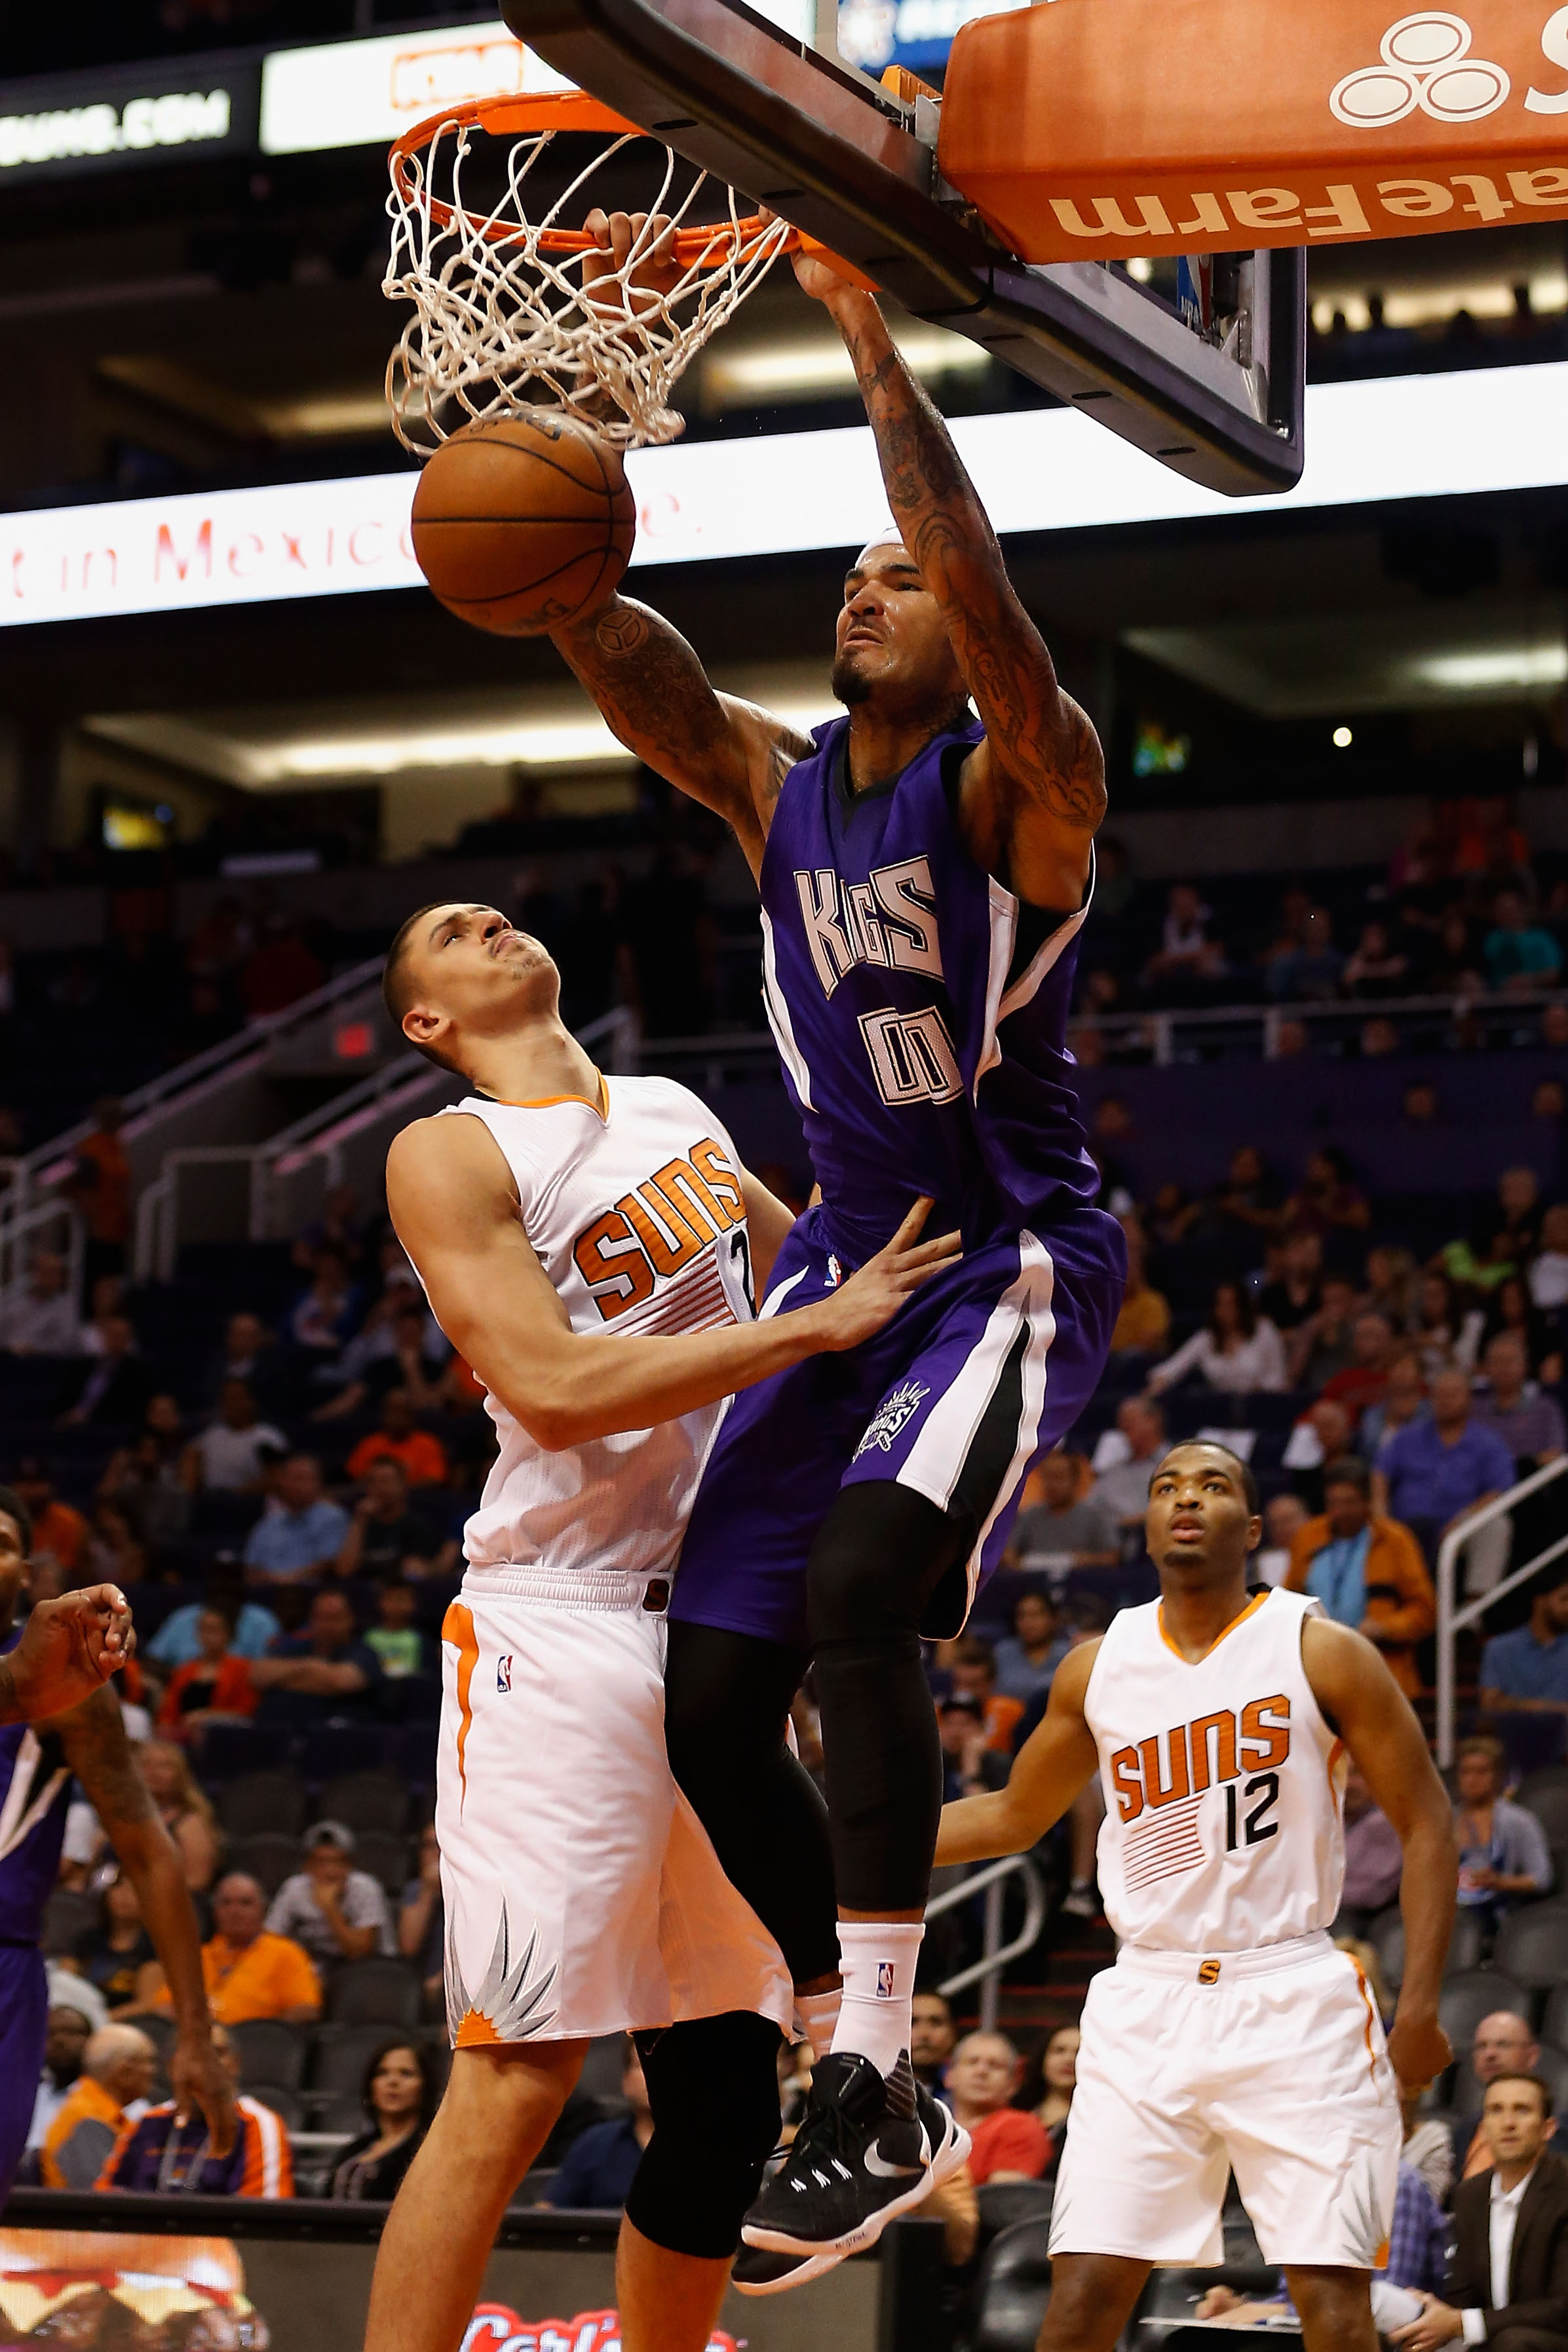 PHOENIX, AZ - OCTOBER 07:  Willie Cauley-Stein #00 of the Sacramento Kings slam dunks the ball over Alex Len #21 of the Phoenix Suns during the first half of the preseason NBA game at Talking Stick Resort Arena on October 7, 2015 in Phoenix, Arizona. (Pho